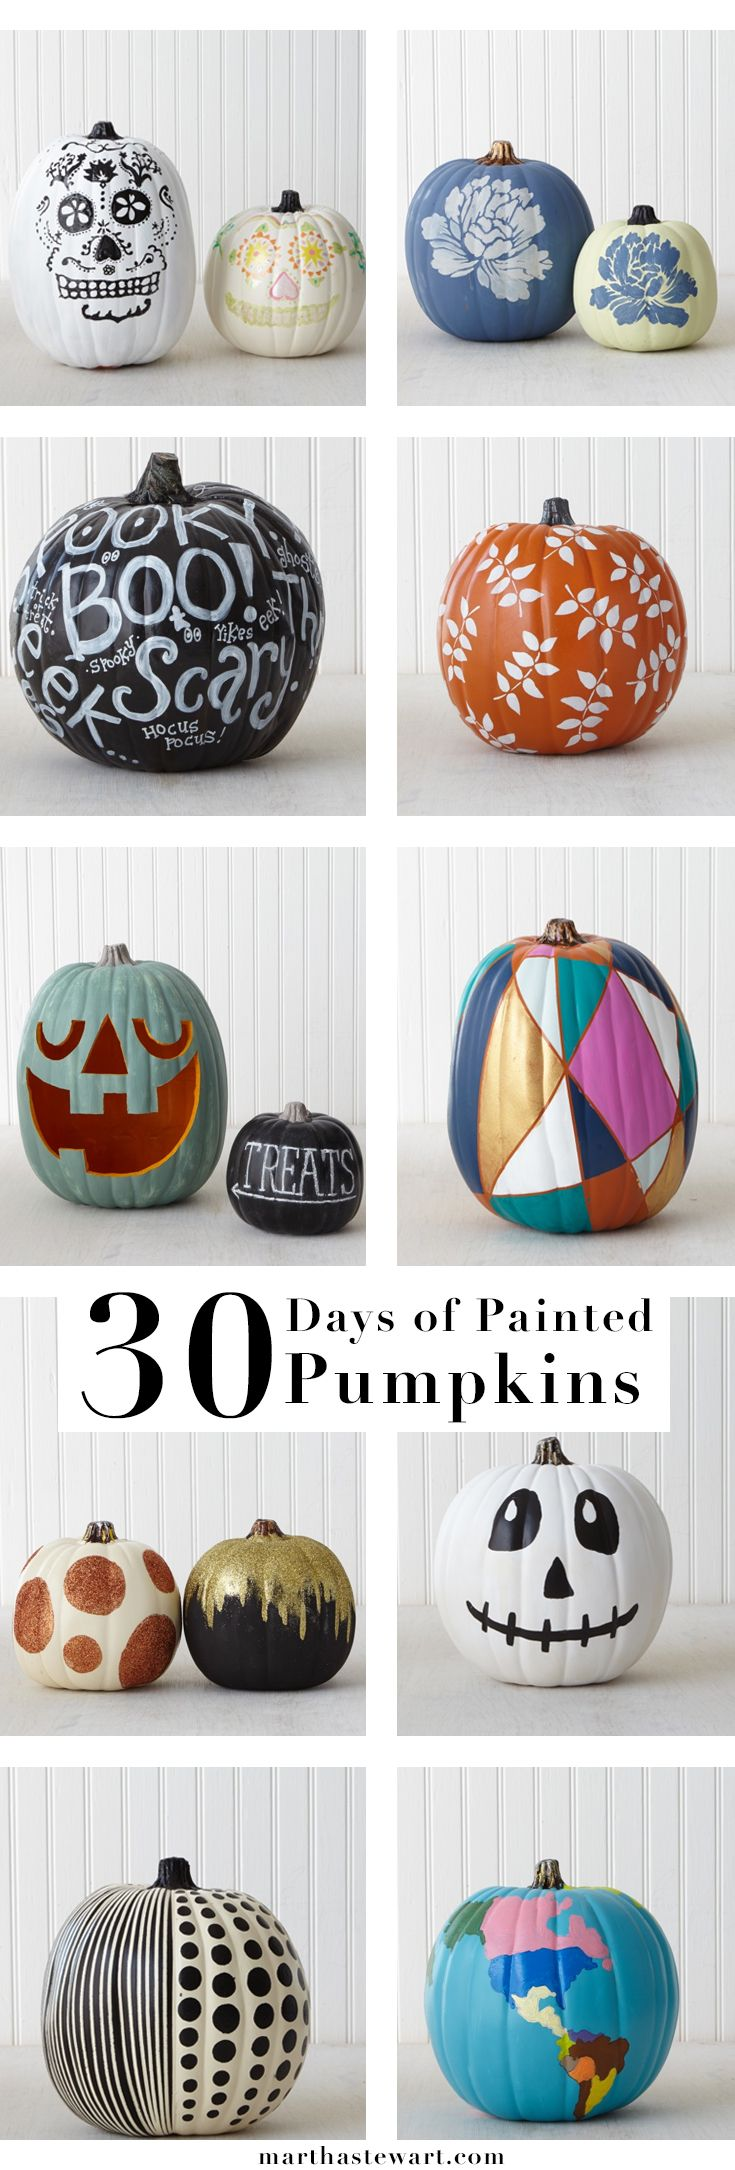 30 Ways to Paint a Pumpkin #paintedpumpkinideas